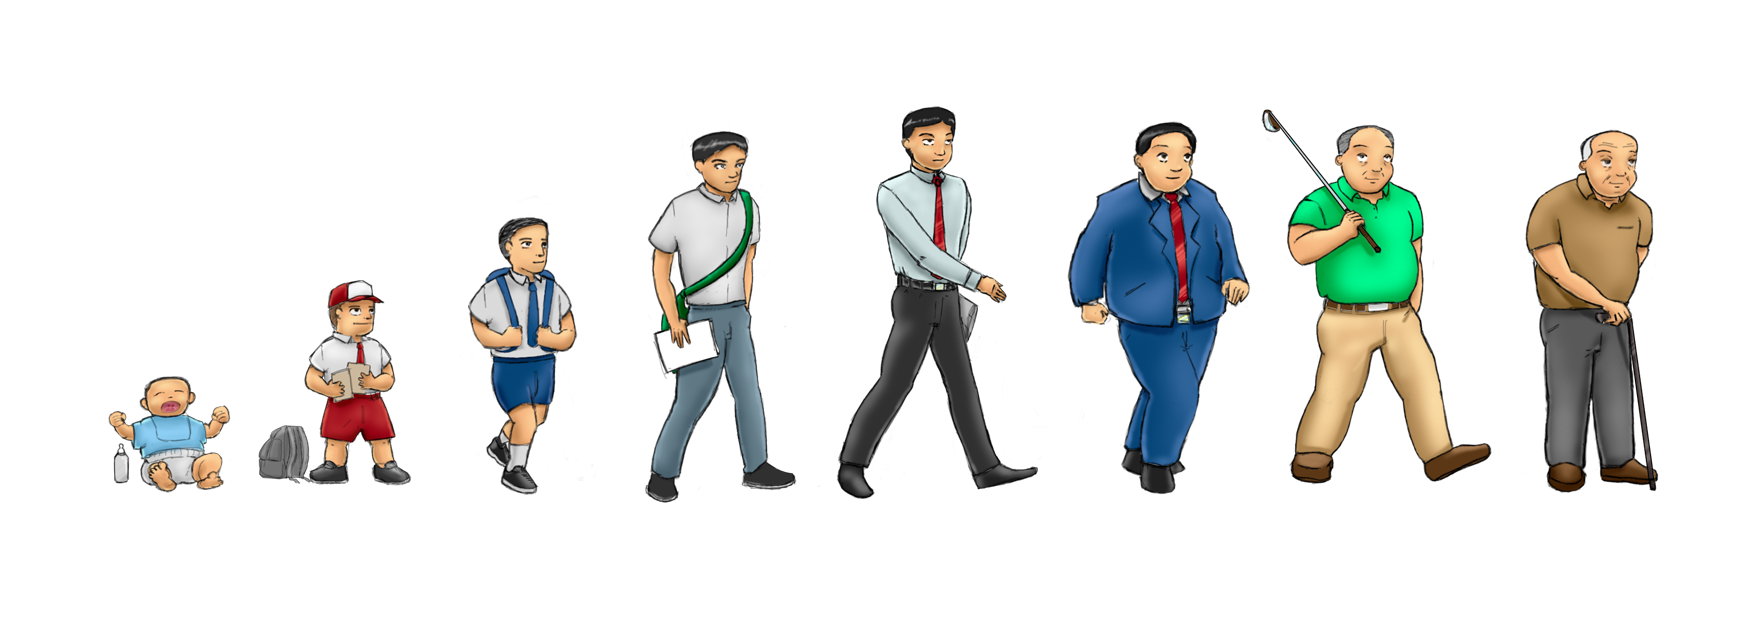 Stages in a persons. Life clipart life journey